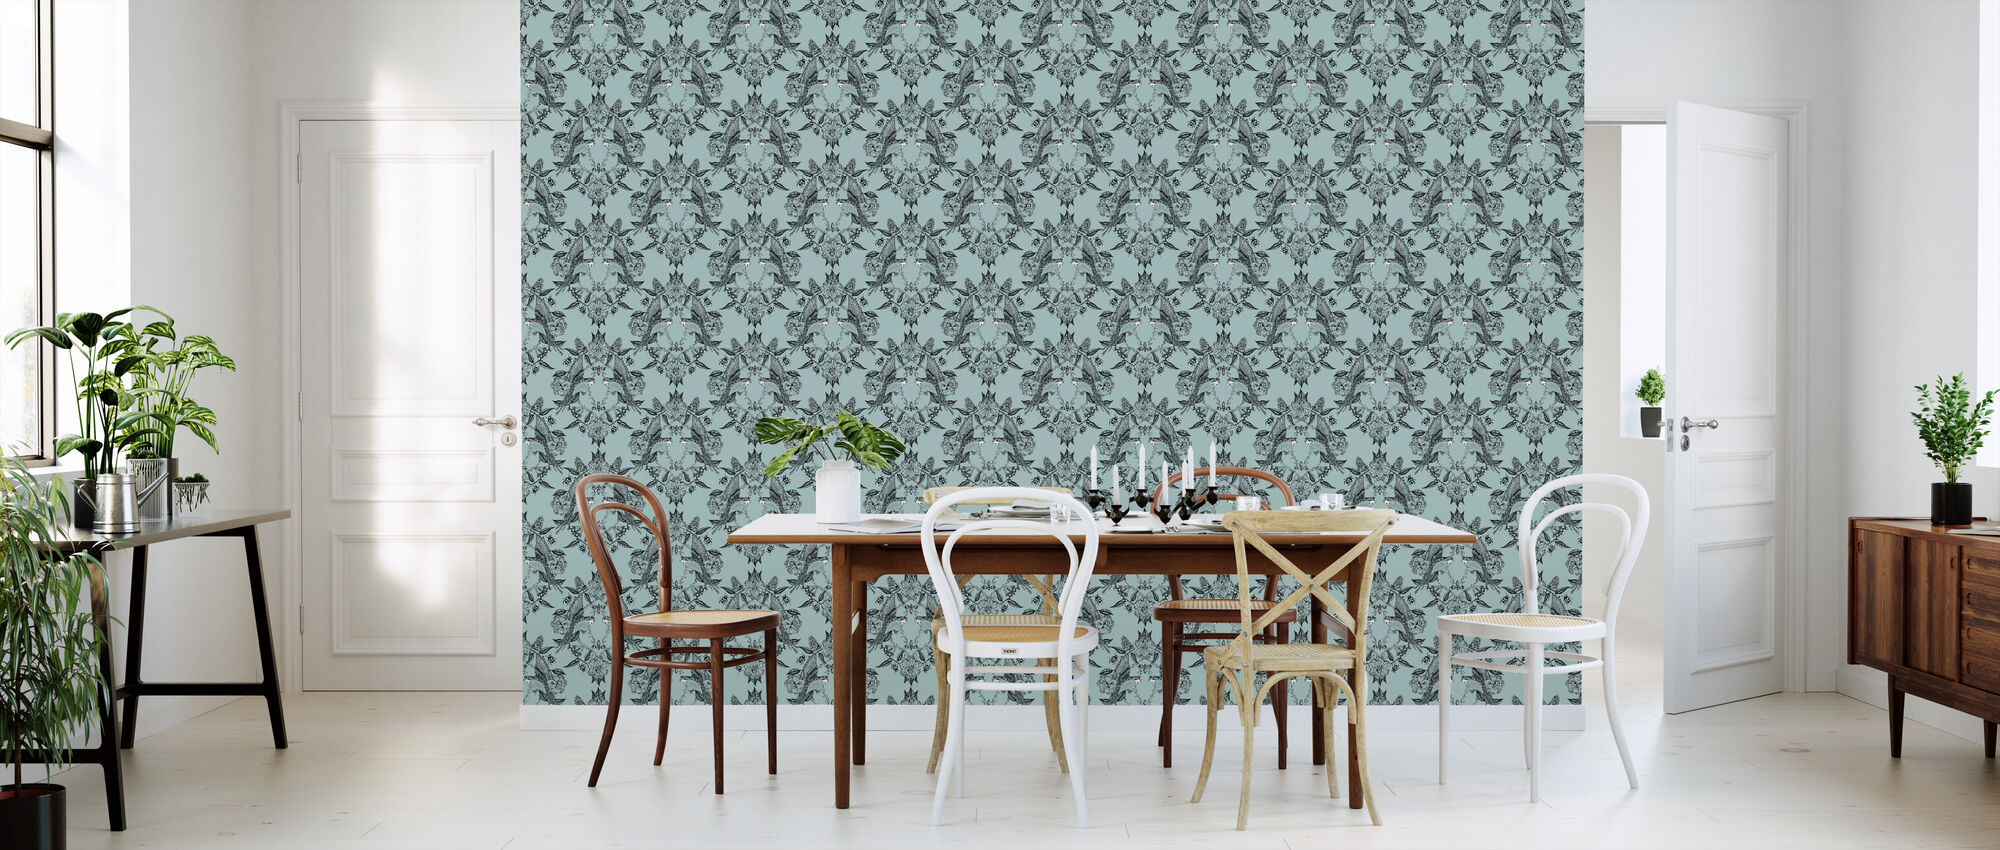 Budgies Medallion Turquoise - Wallpaper - Kitchen